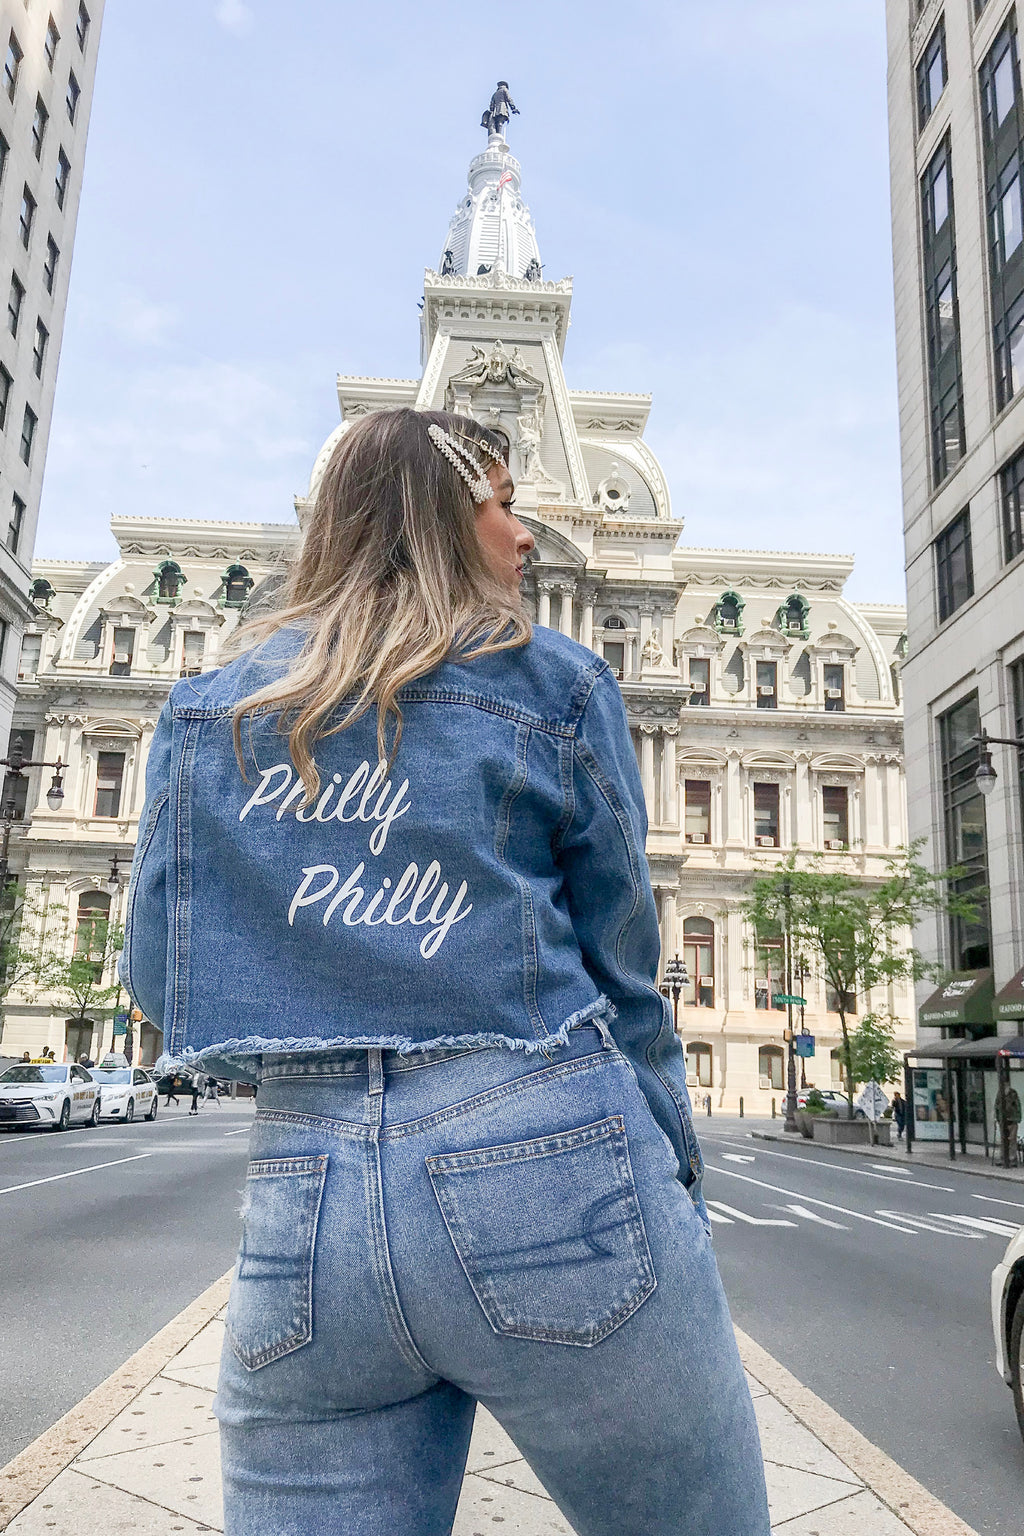 'Philly Philly' Denim Jacket